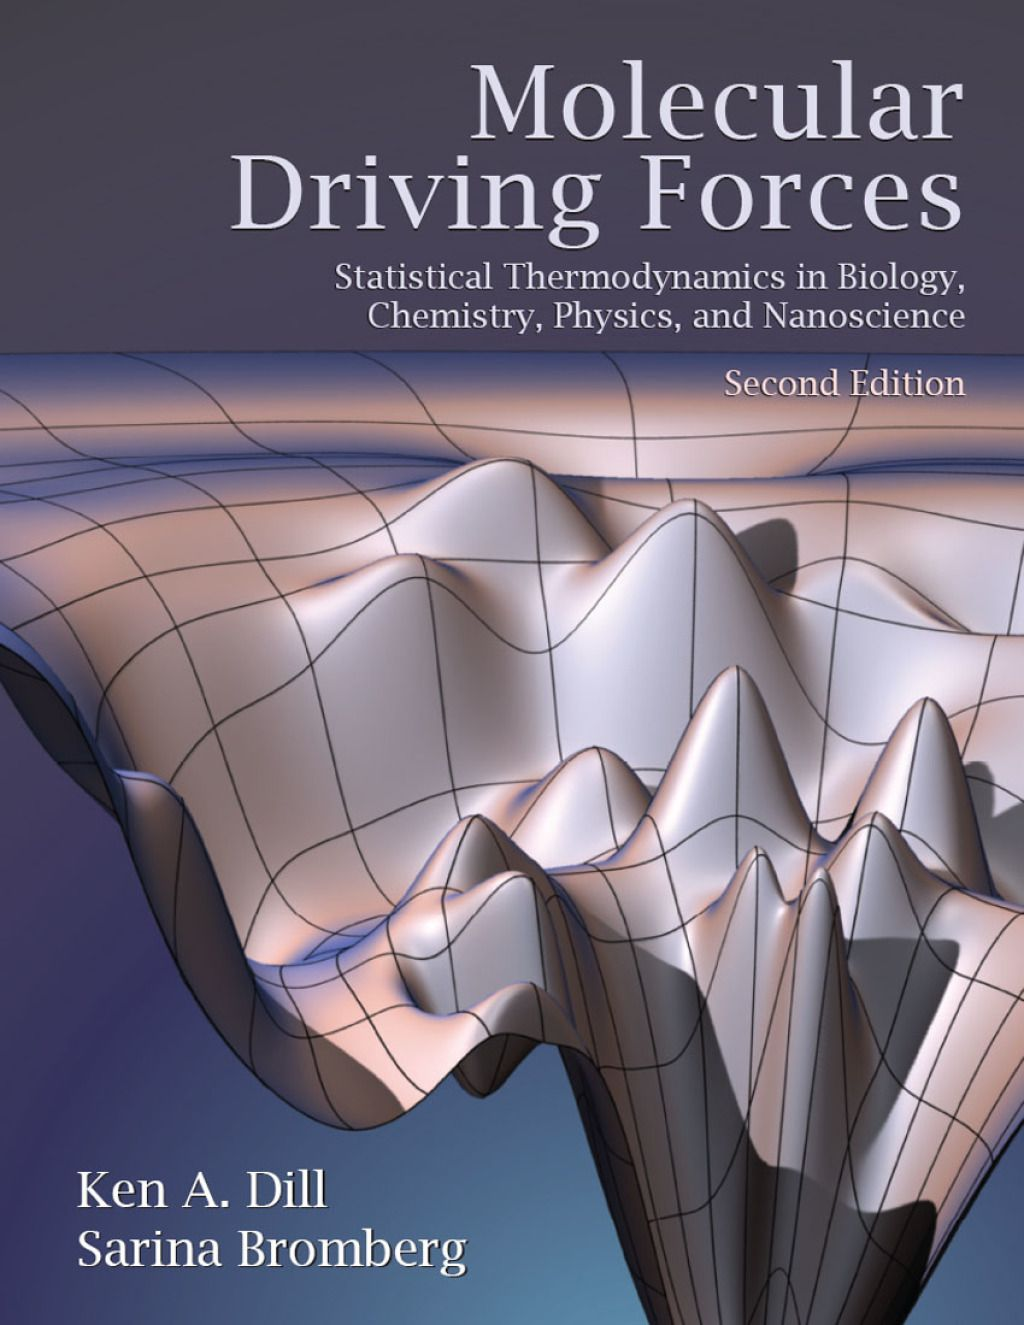 Molecular Driving Forces Statistical Thermodynamics In Biology Chemistry Physics And Nanoscience Ebook Rental Thermodynamics Chemistry Physics